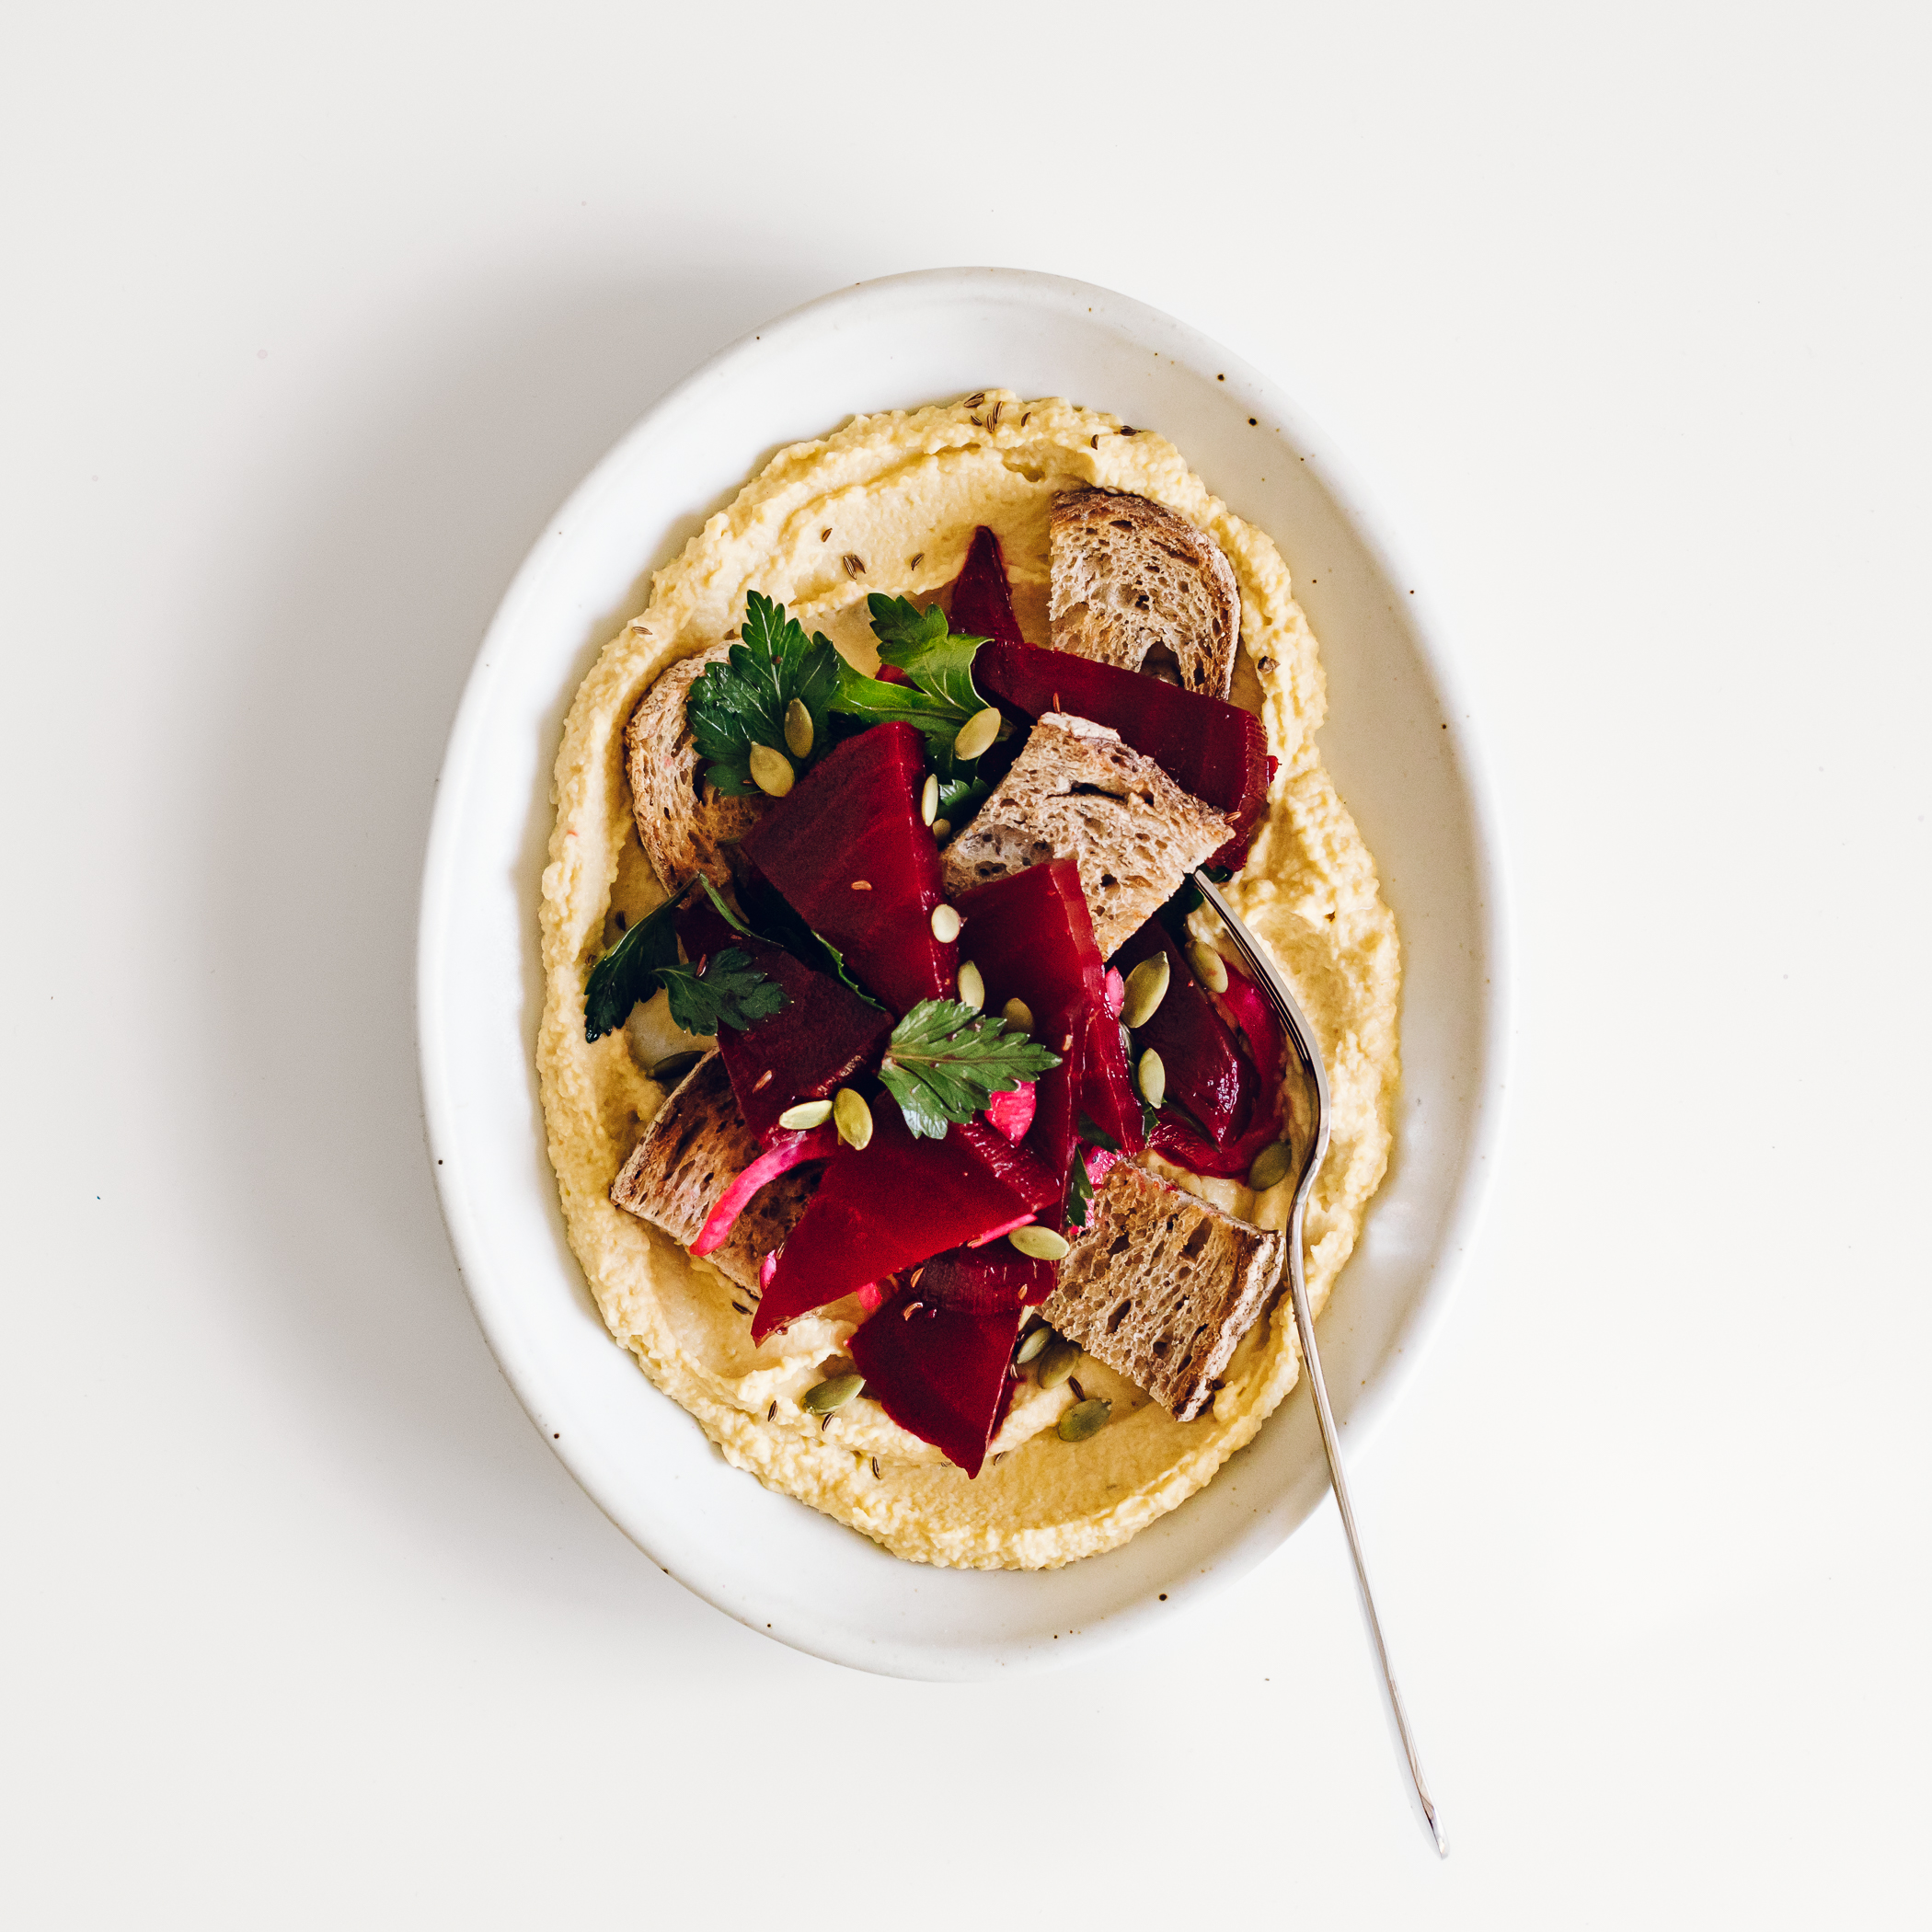 Beet-Centric Hummus Plate by Jessie May